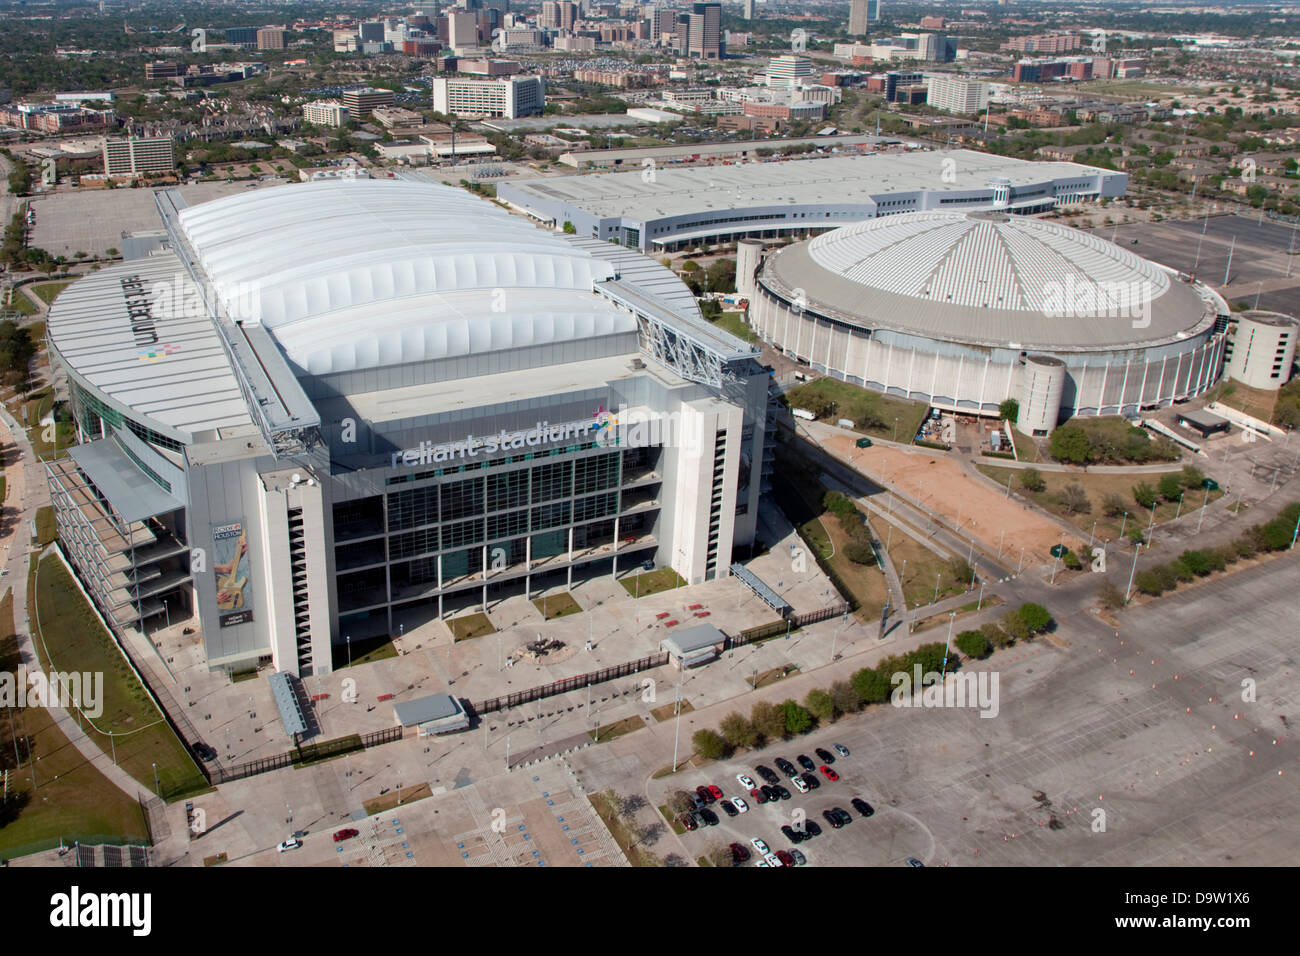 Aerial Of Reliant Stadium And Reliant Astrodome At Reliant